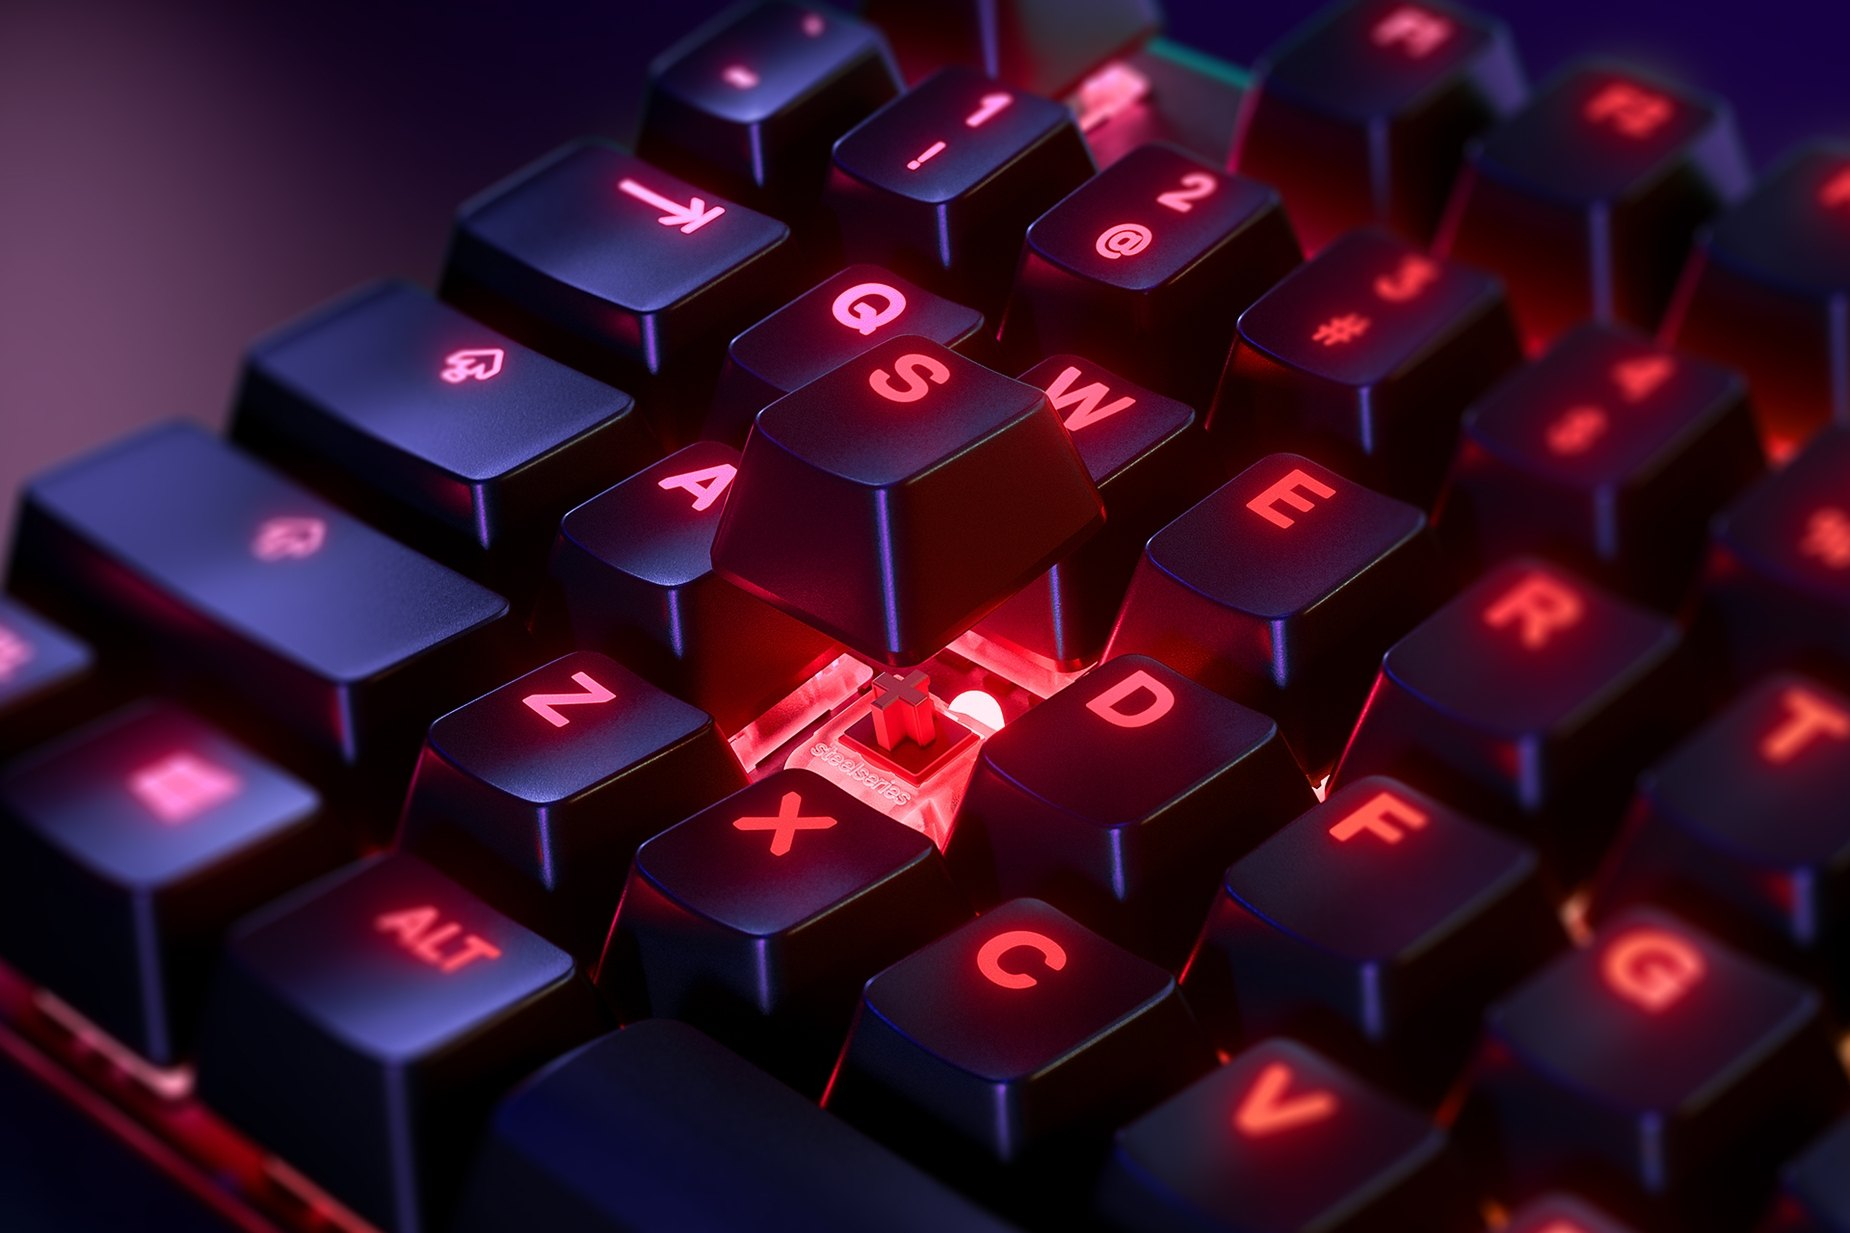 Zoomed in view of a single key on the US English-Apex 7 (Red Switch) gaming keyboard, the key is raised up to show the SteelSeries QX2 Mechanical RGB Switch underneath